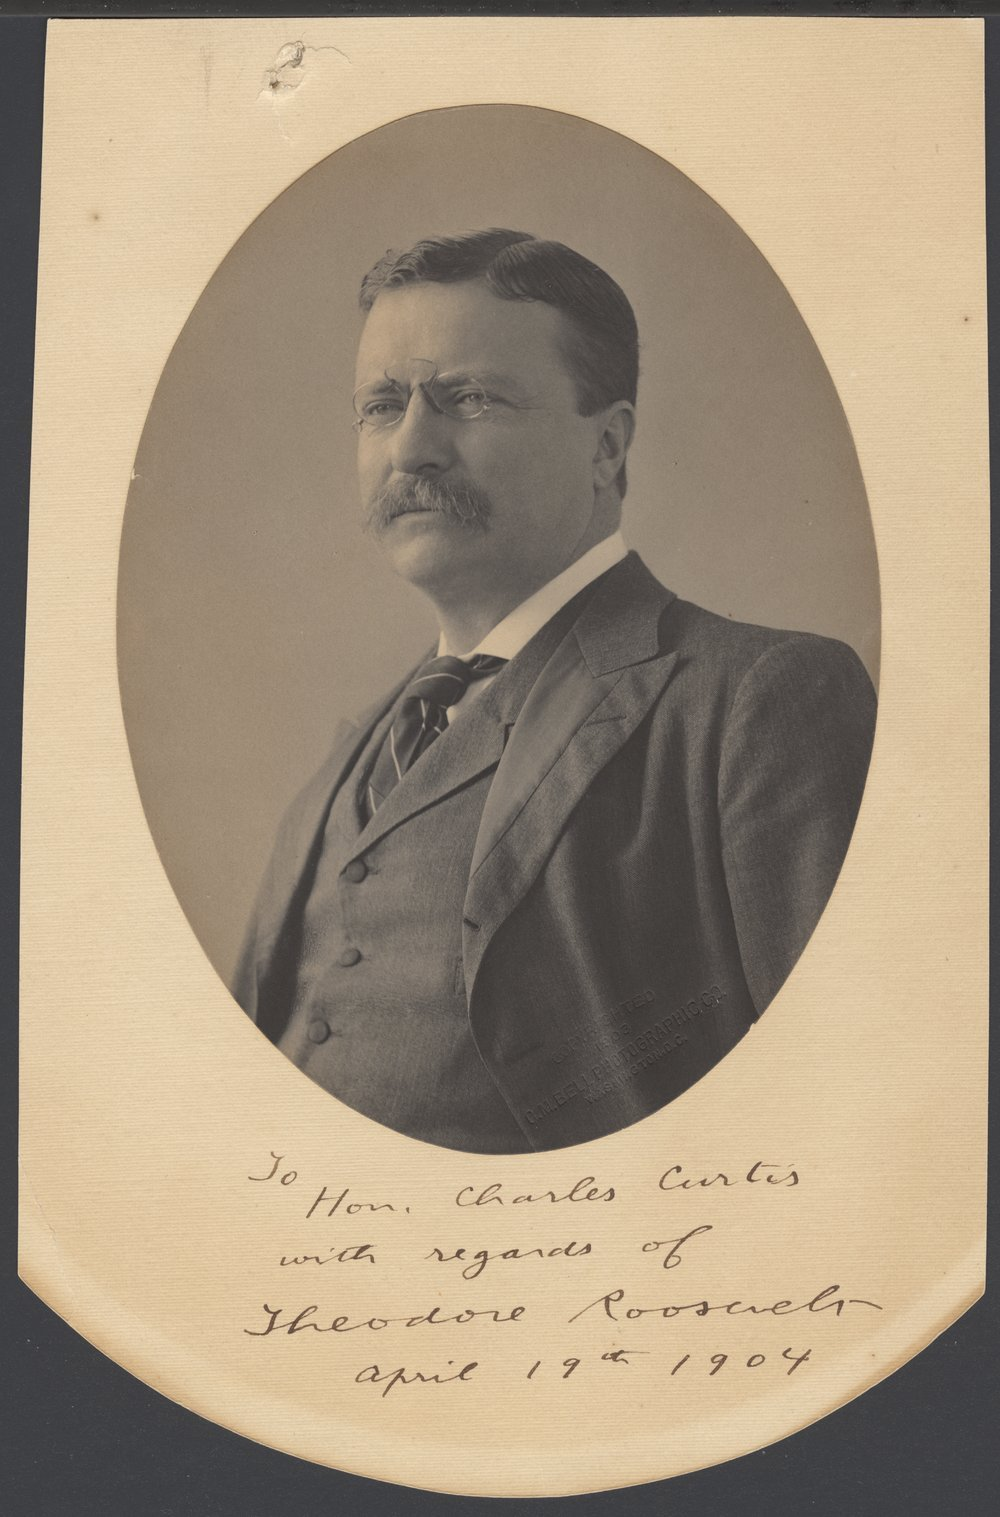 Theodore Roosevelt, President of the United States